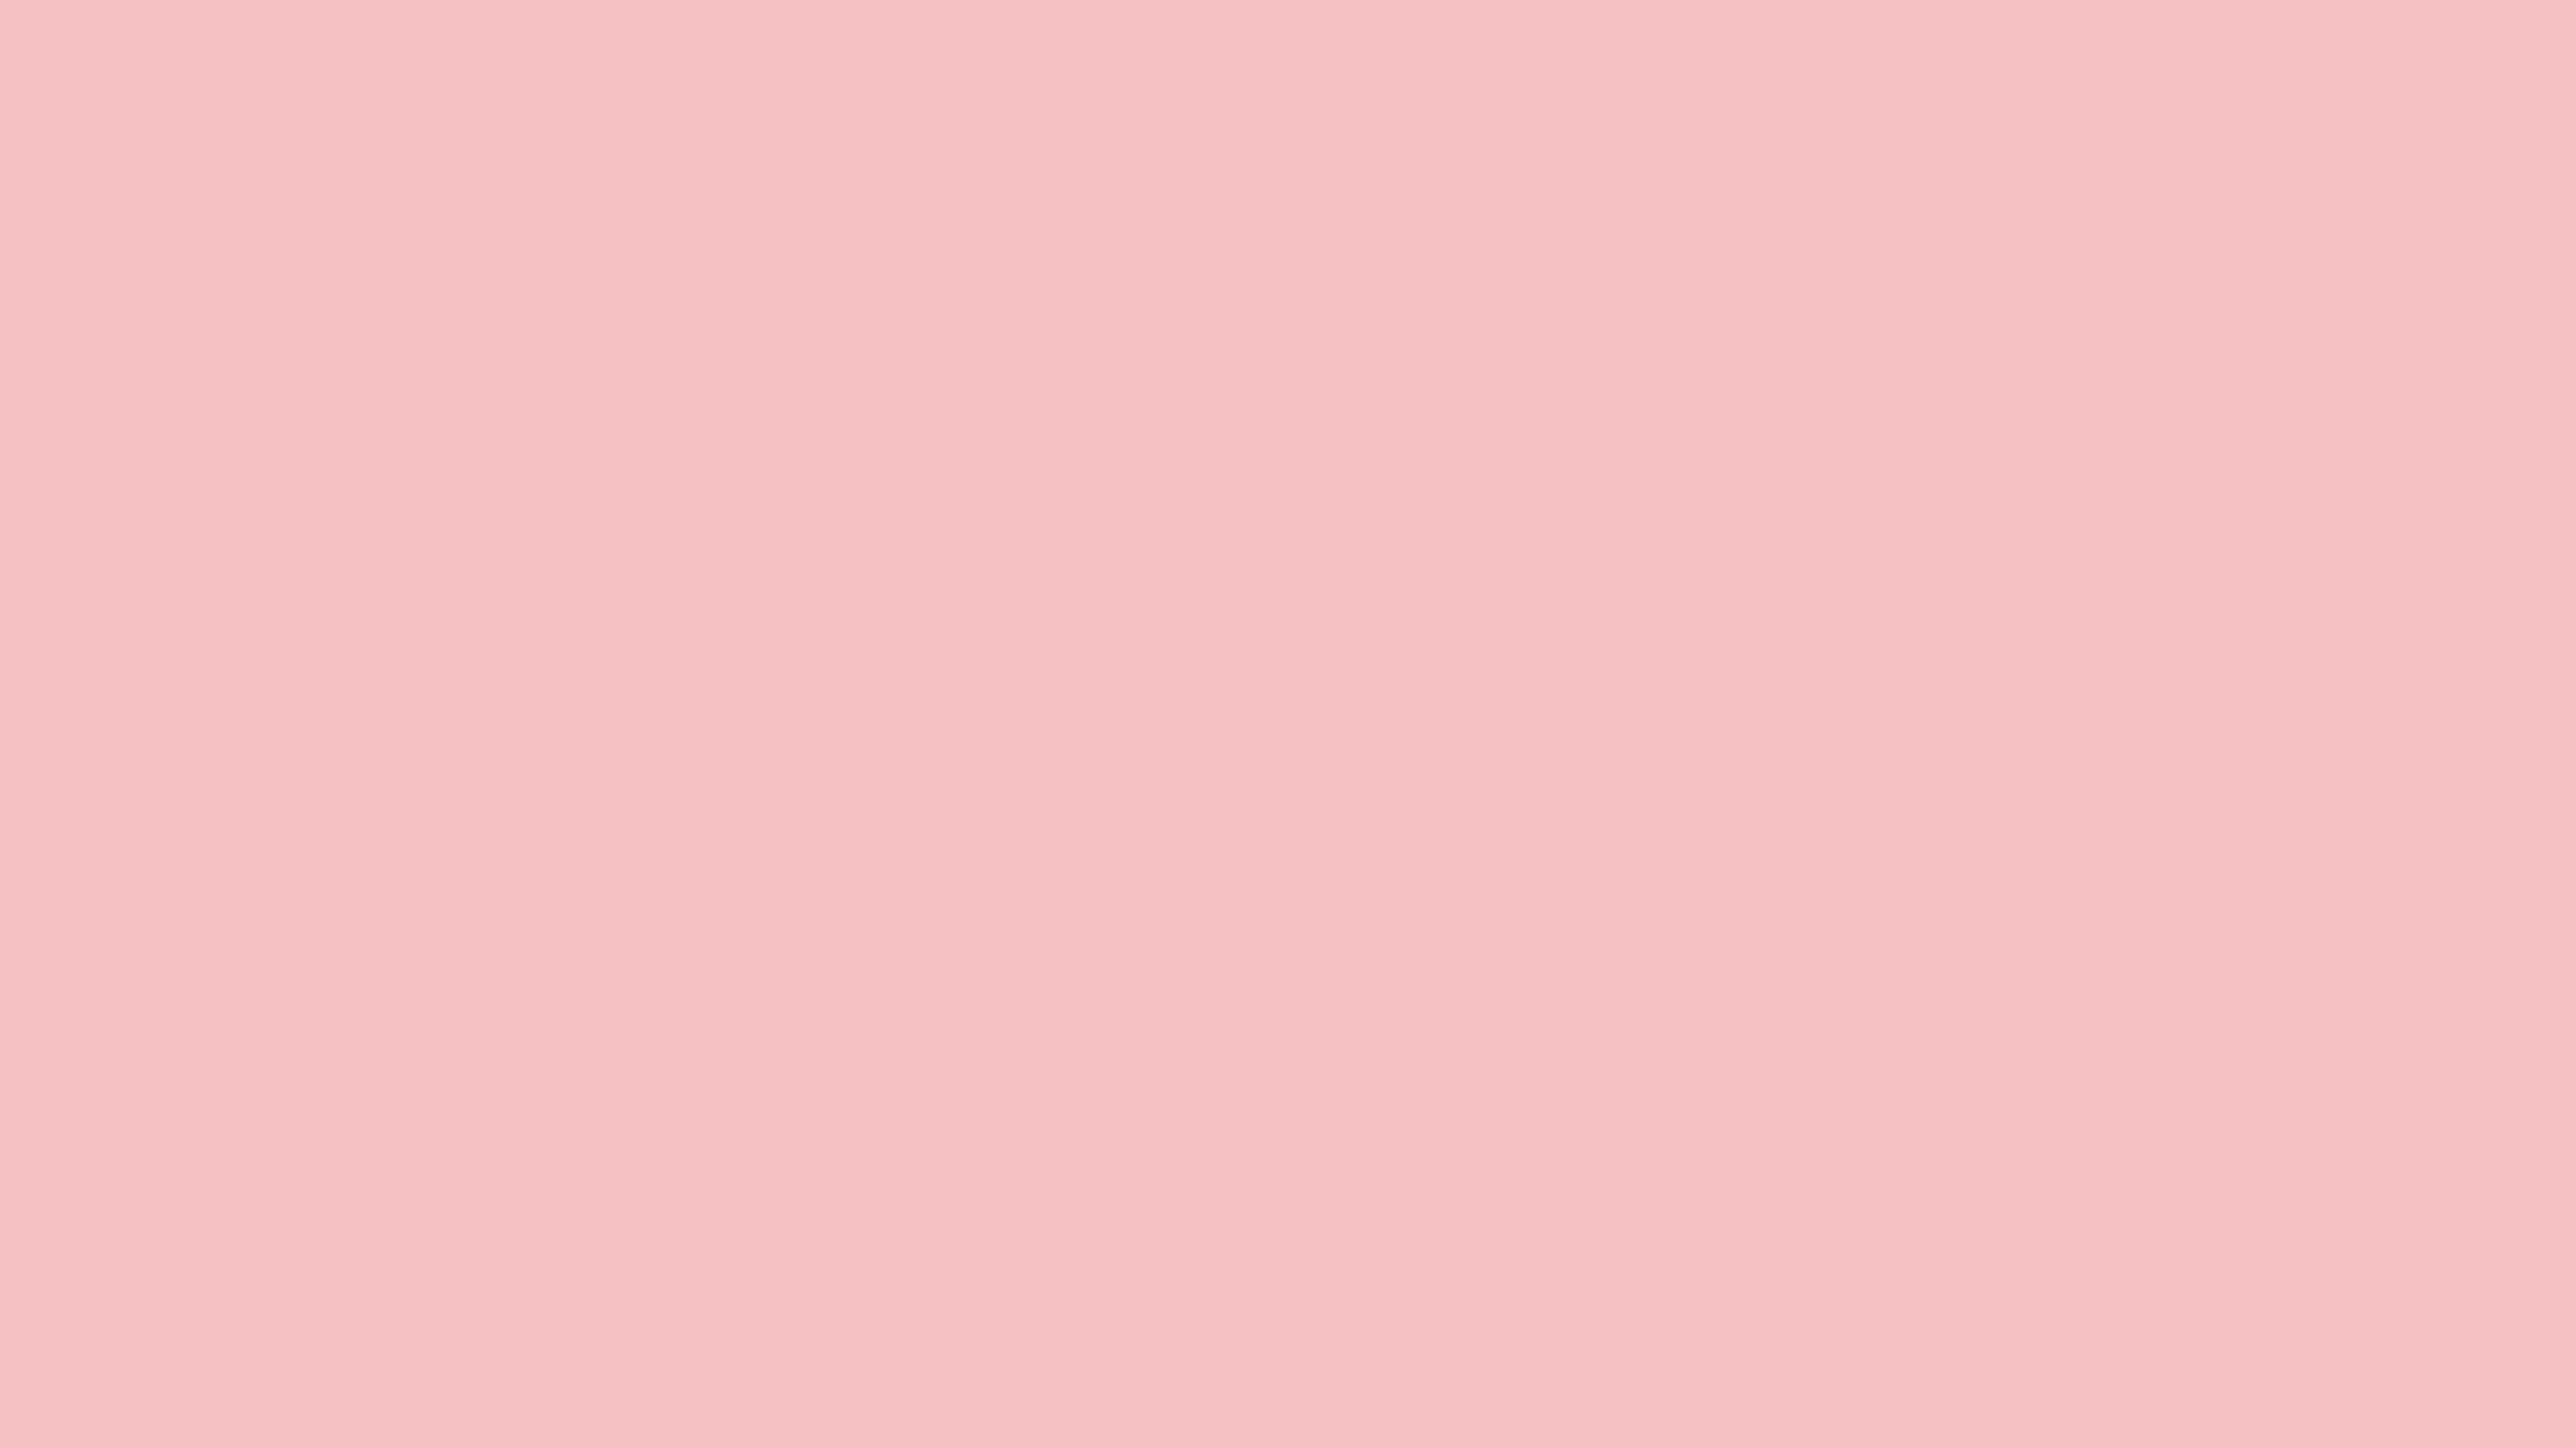 5120x2880 Baby Pink Solid Color Background